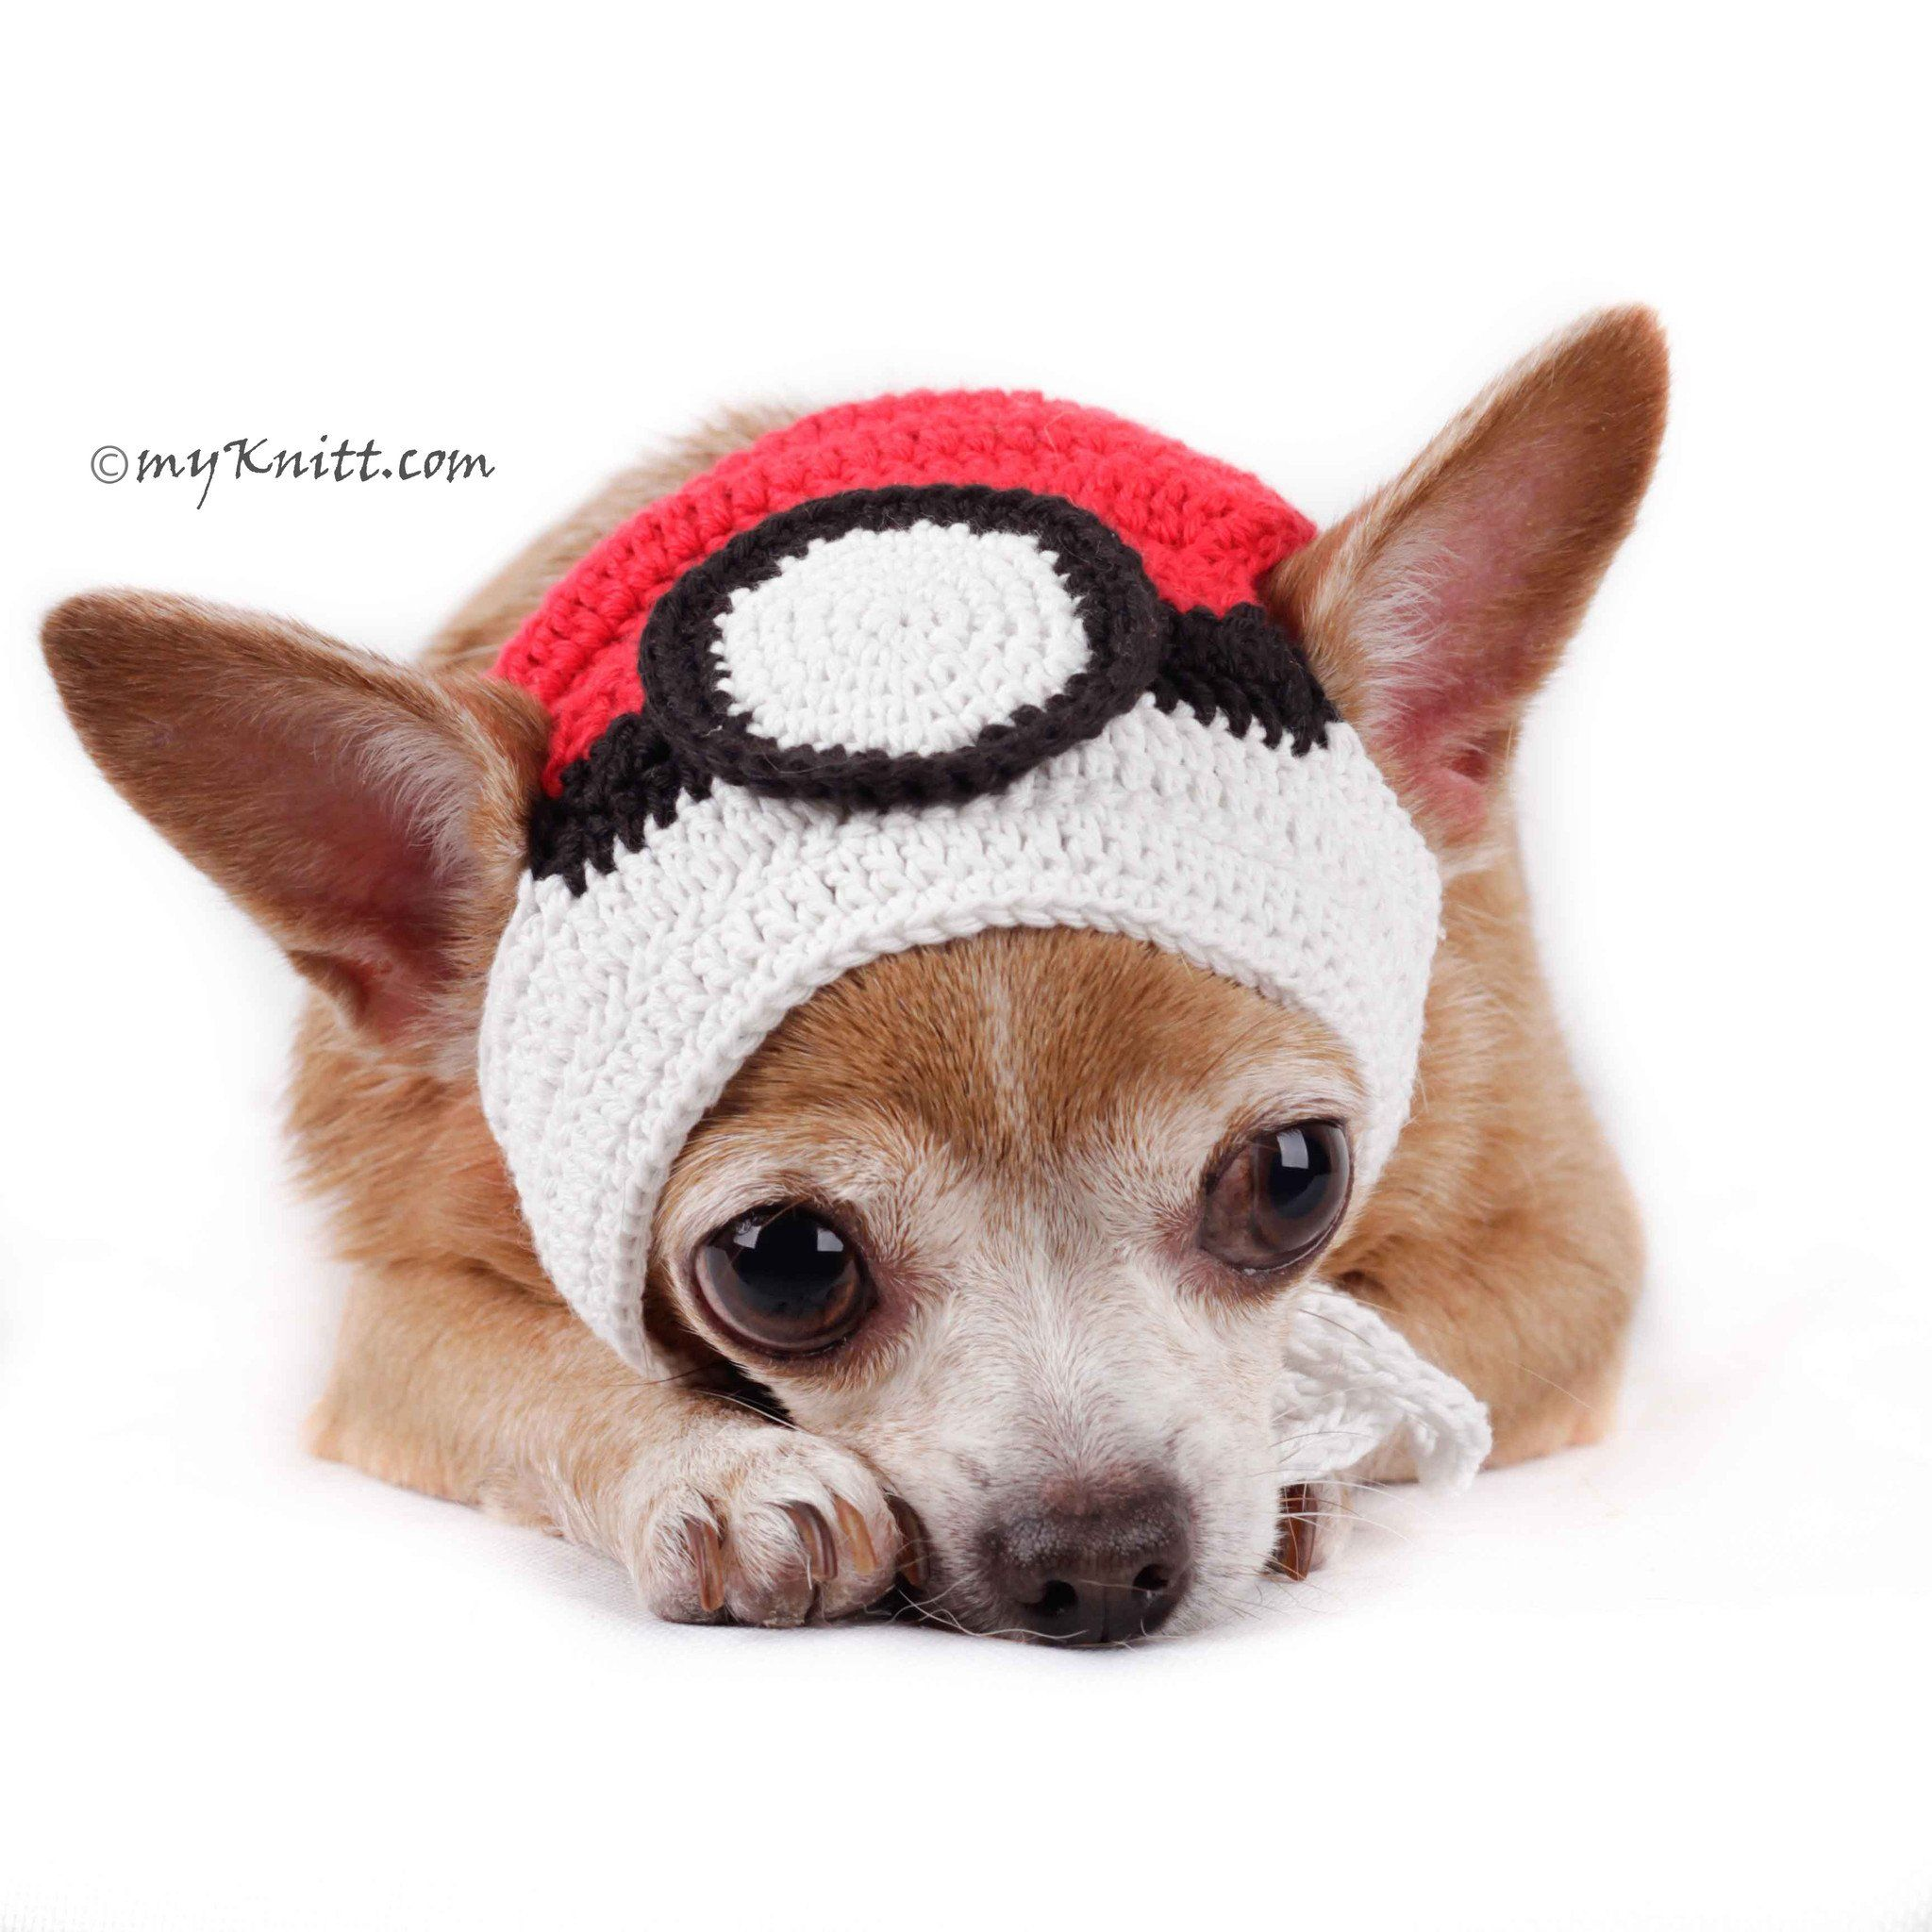 d6d6d2be581 Pokemon Ball Dog Hat Halloween Cute Pet Accessories DB1 by Myknitt